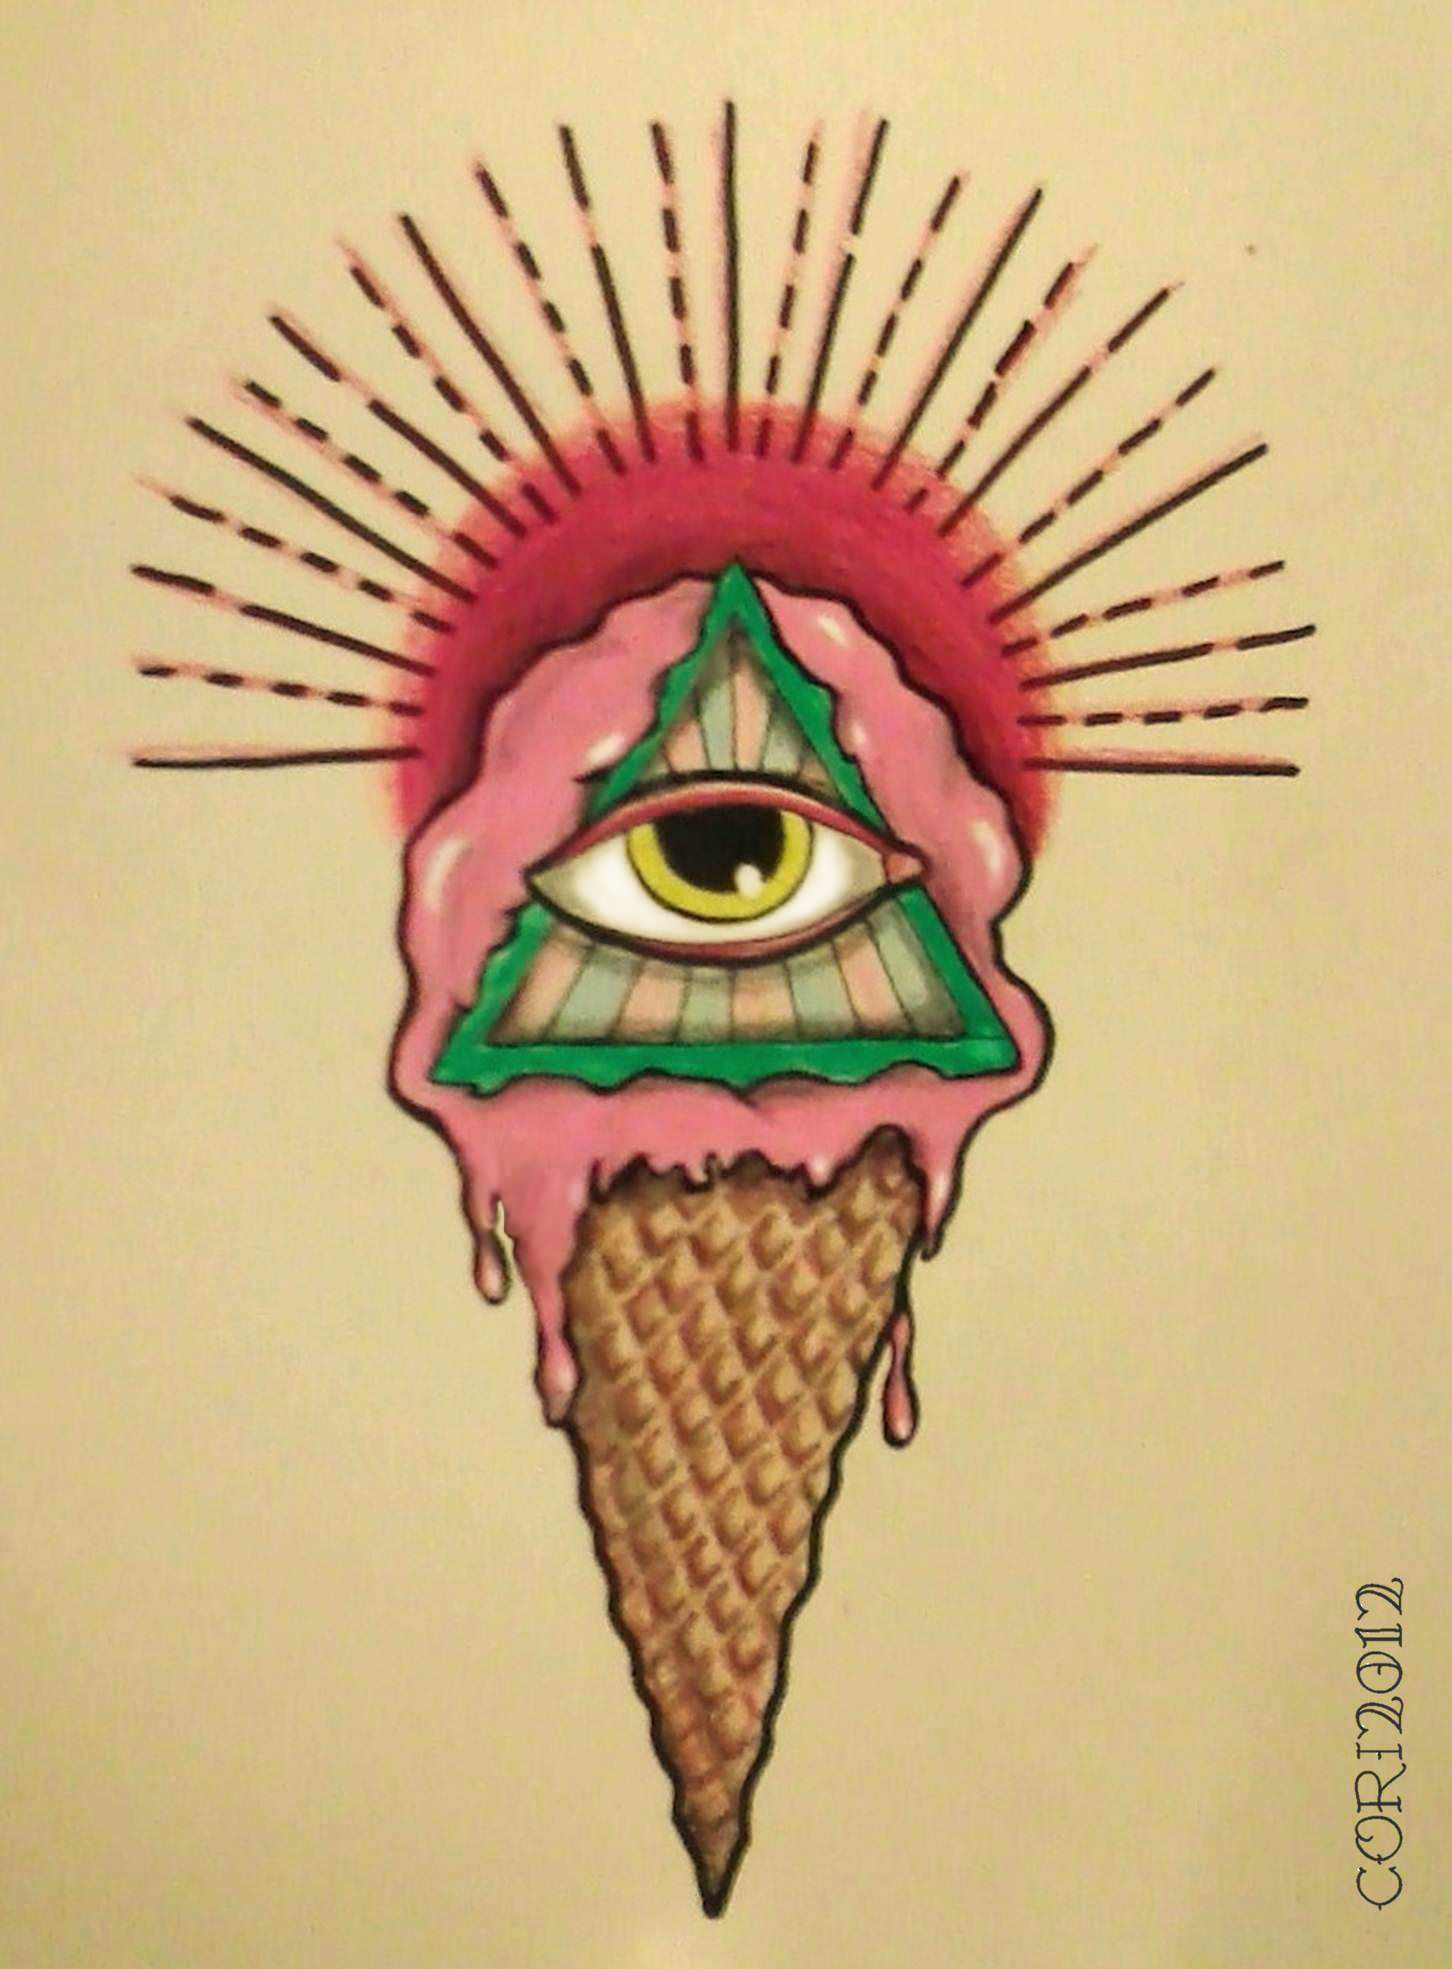 All Seeing Eye's Cream Cone | Eye painting, Surrealism ...